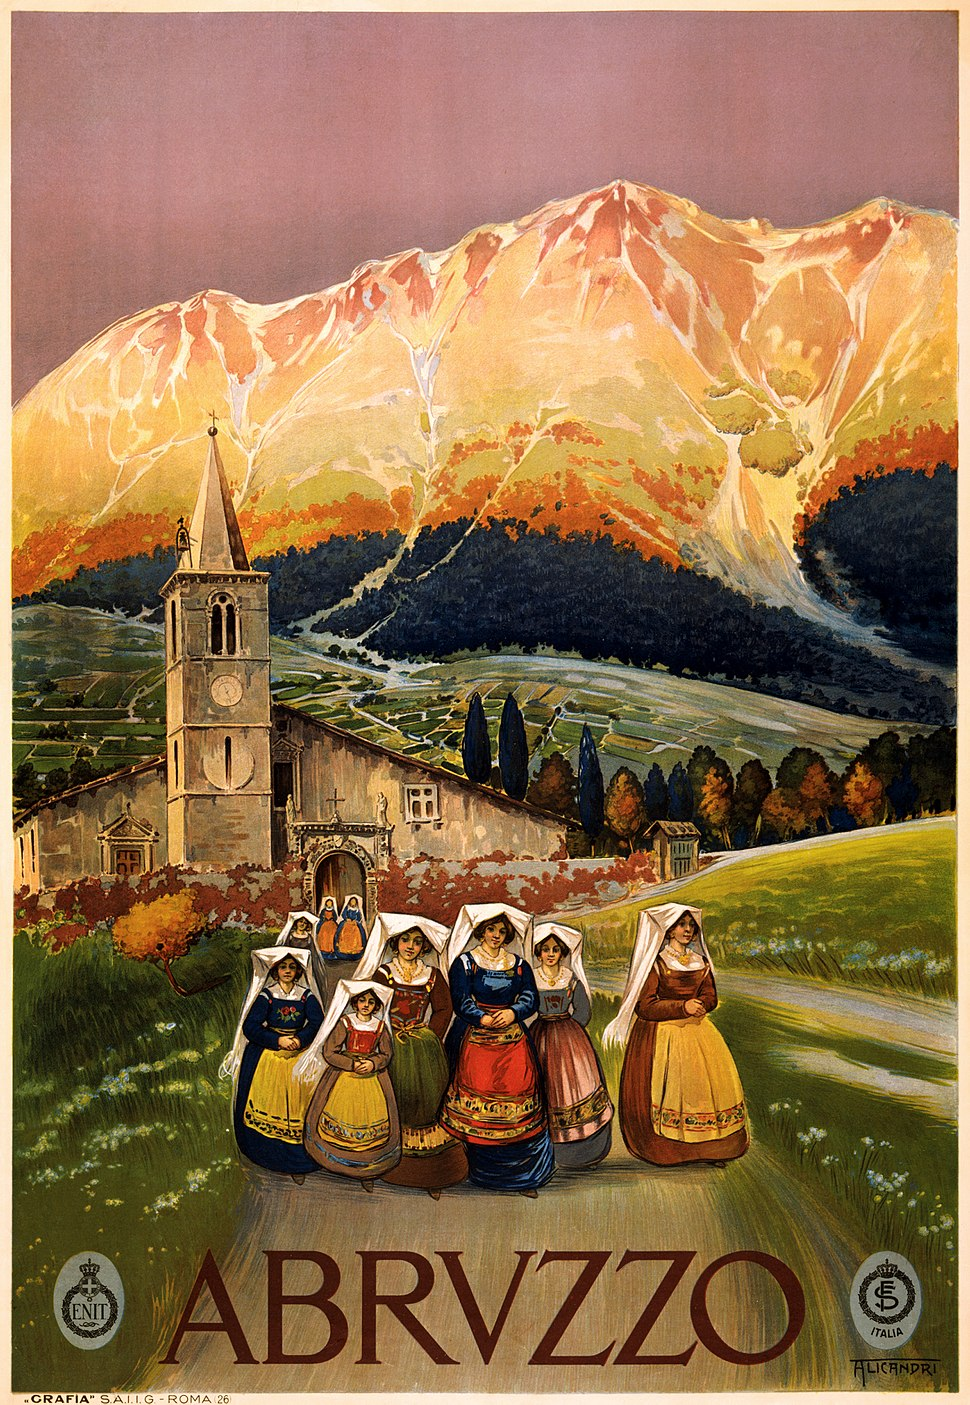 Abruzzo, travel poster for ENIT (LOC cph.3g12505)